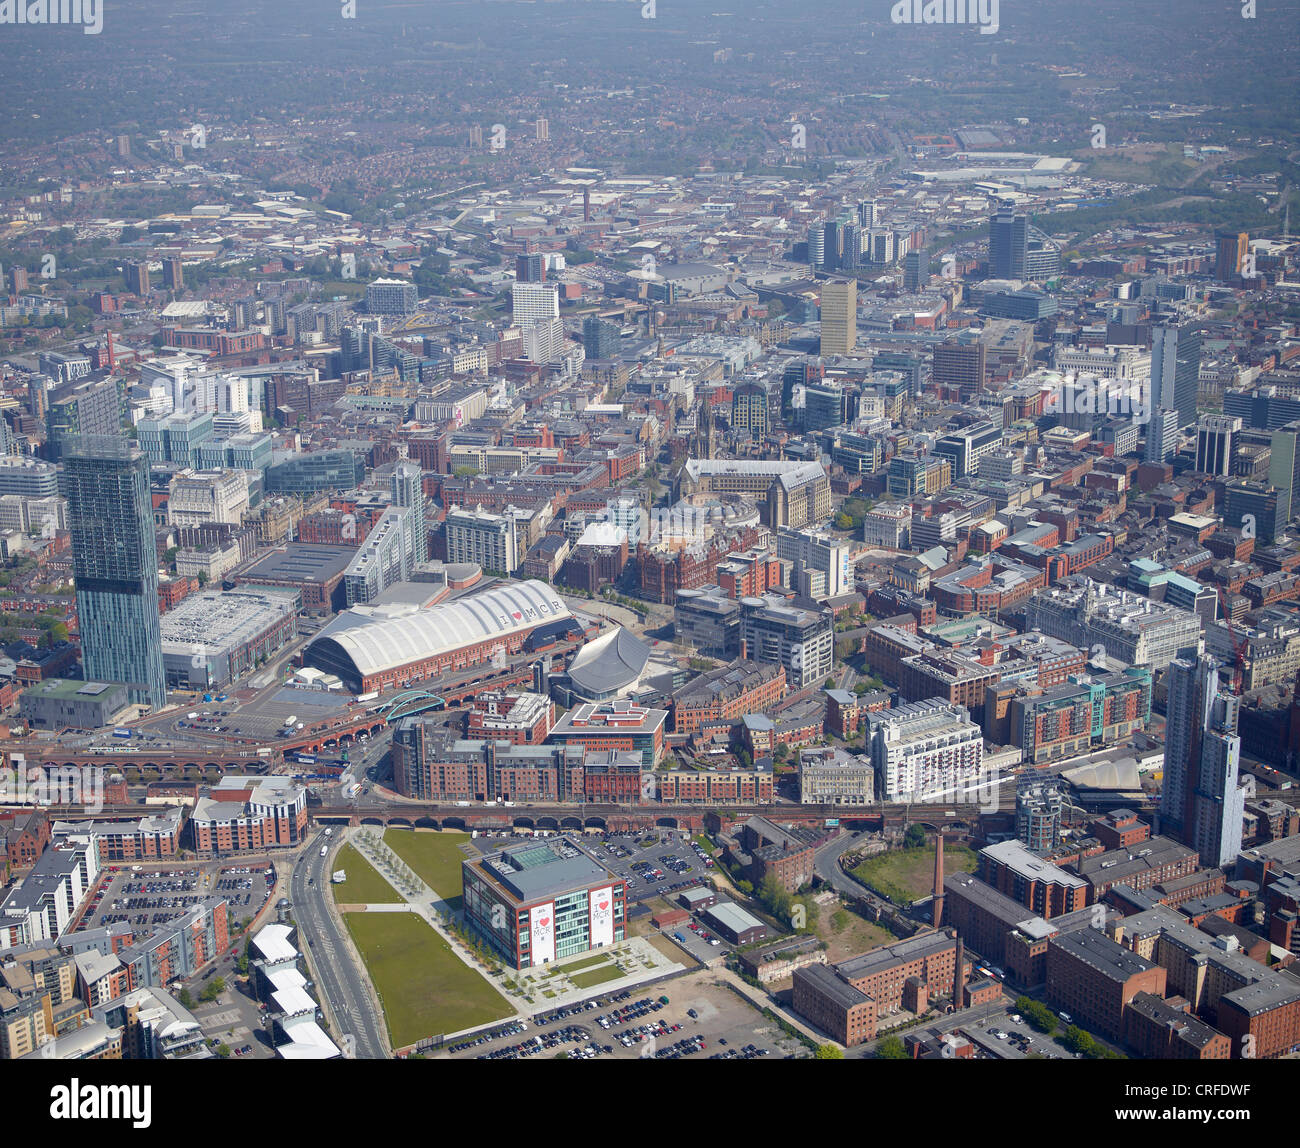 Manchester City Centre, from the air, North West England, Beetham Tower and The Exchange in the foreground Stock Photo